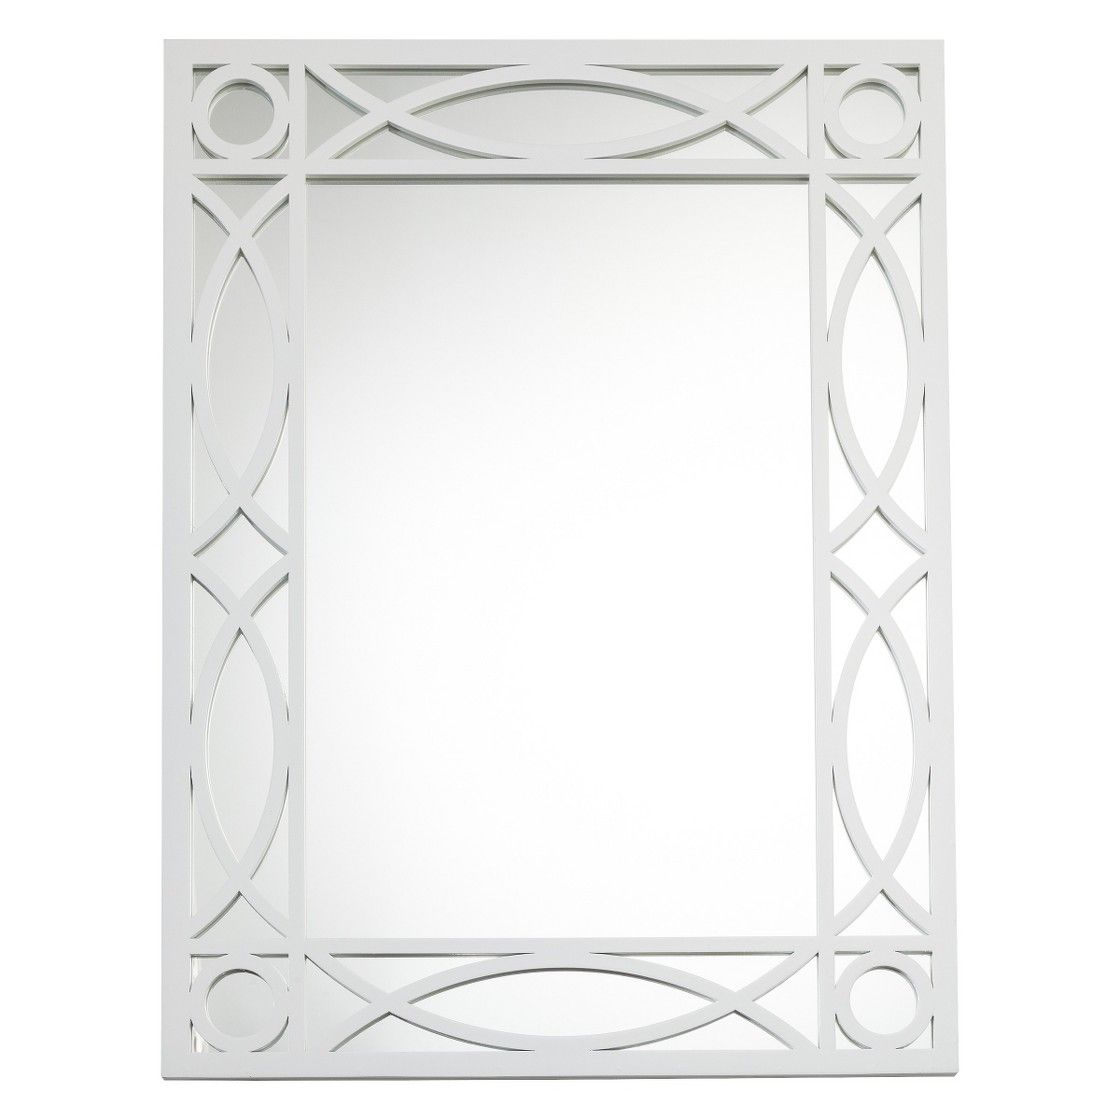 Threshold� Patterned Wall Mirror - White